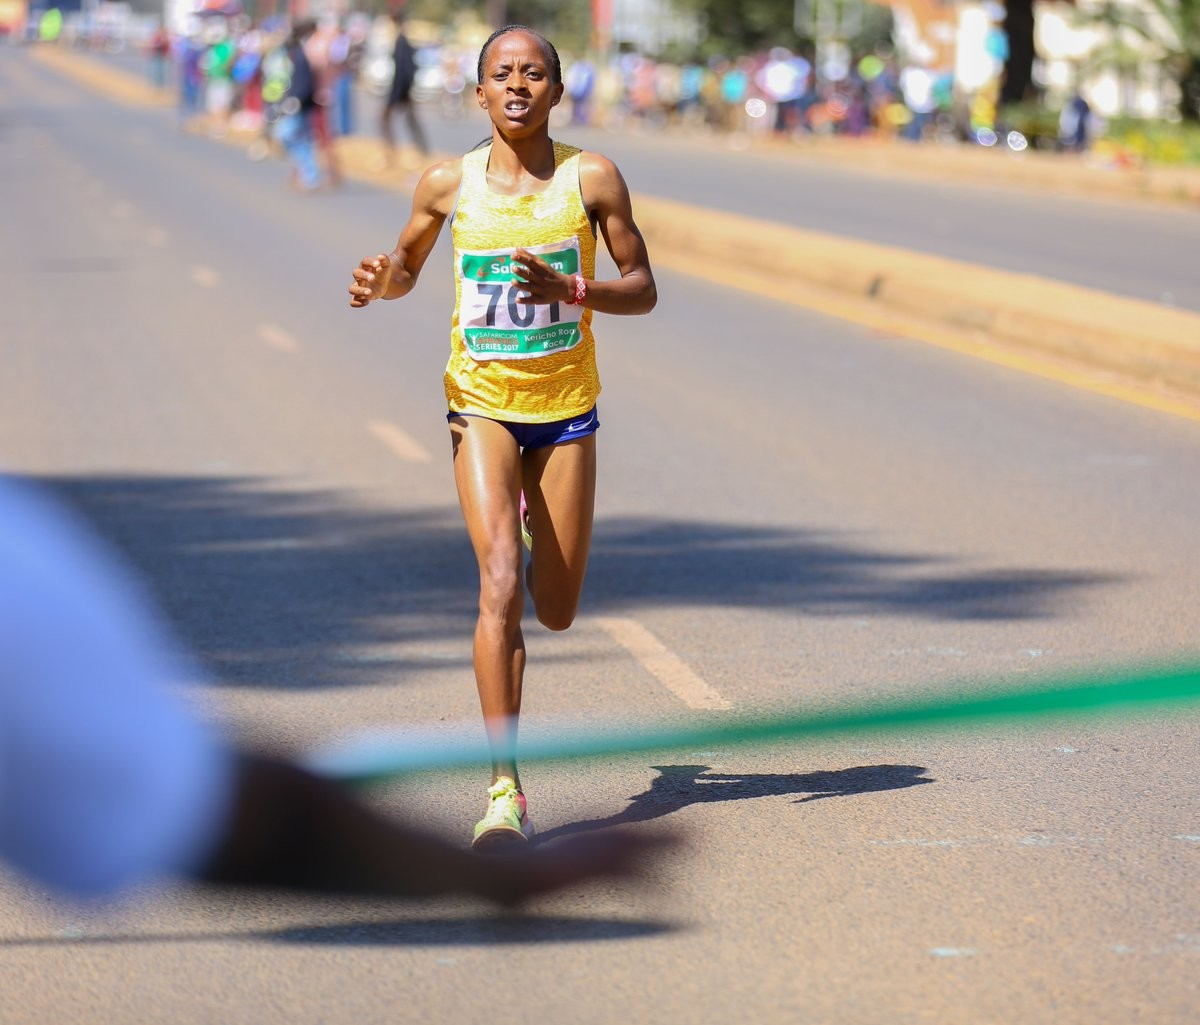 Evaline Chirchir hopes to cross the finish line first at the Dam Tot Damloop